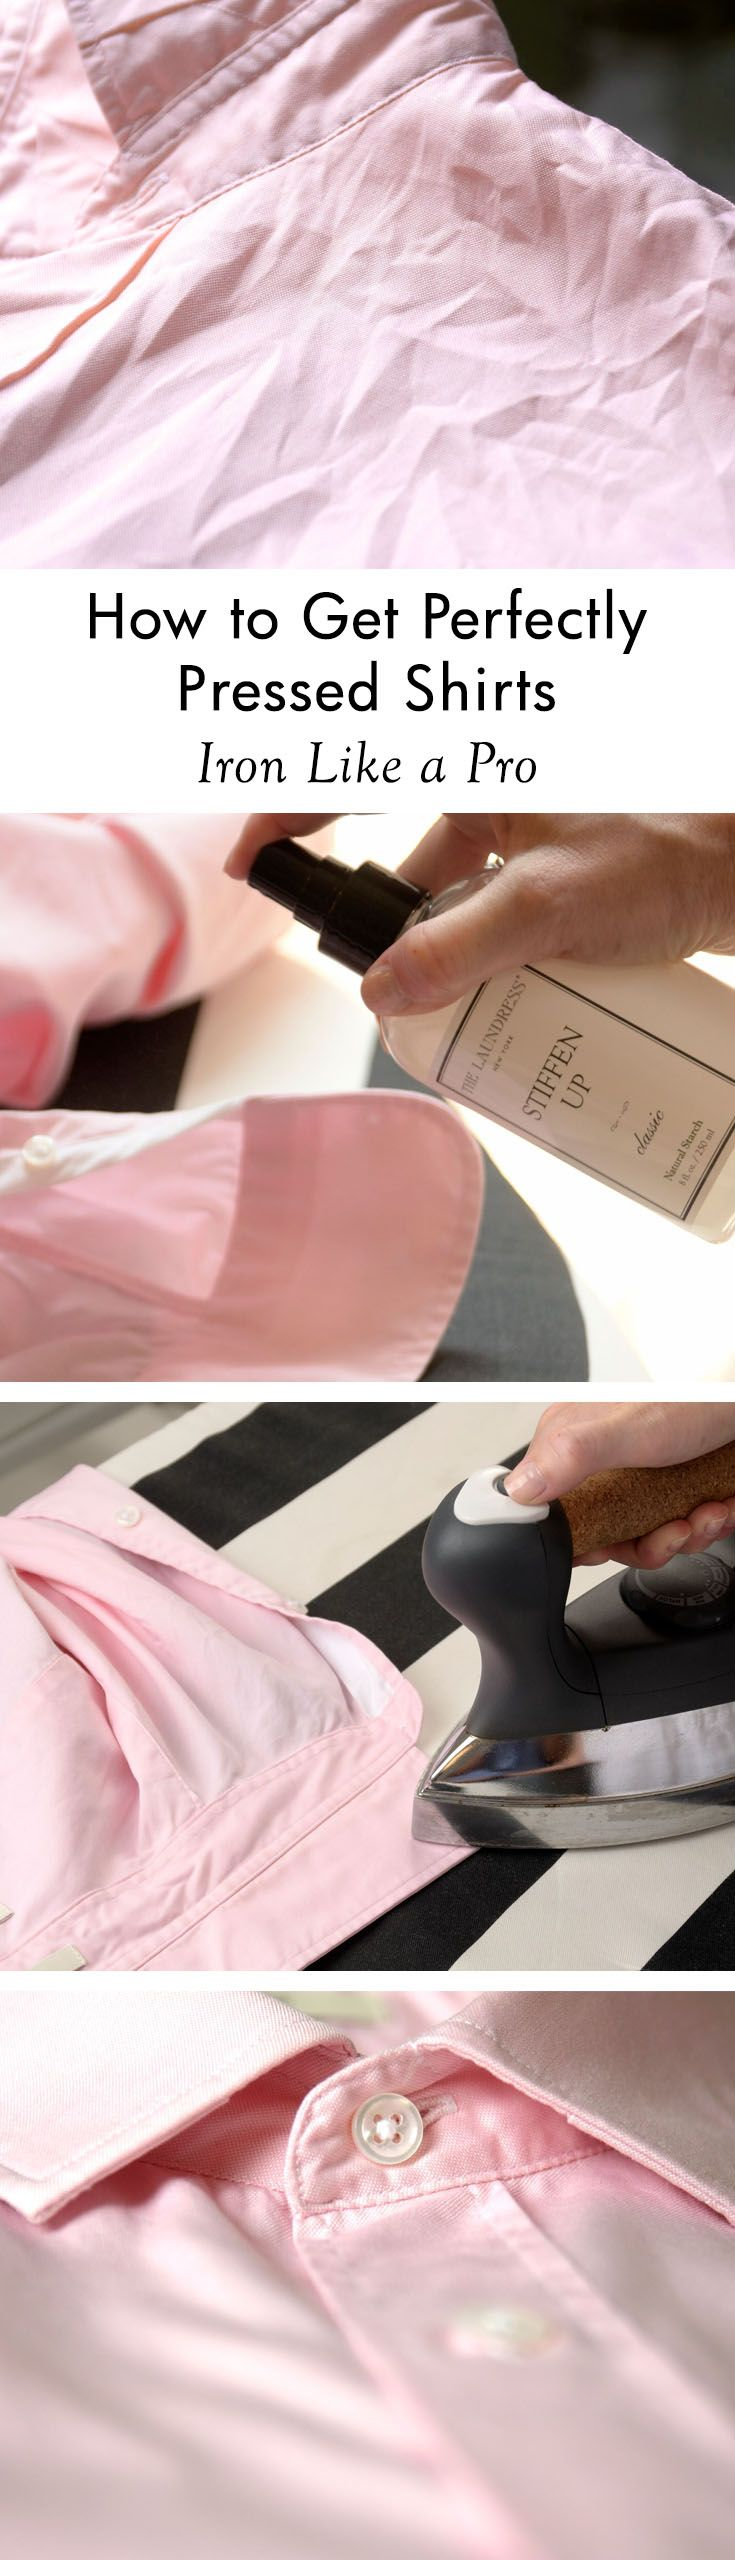 Learn how to iron like a pro with expert tips for perfectly pressed shirts, pants, linens, and even silk!